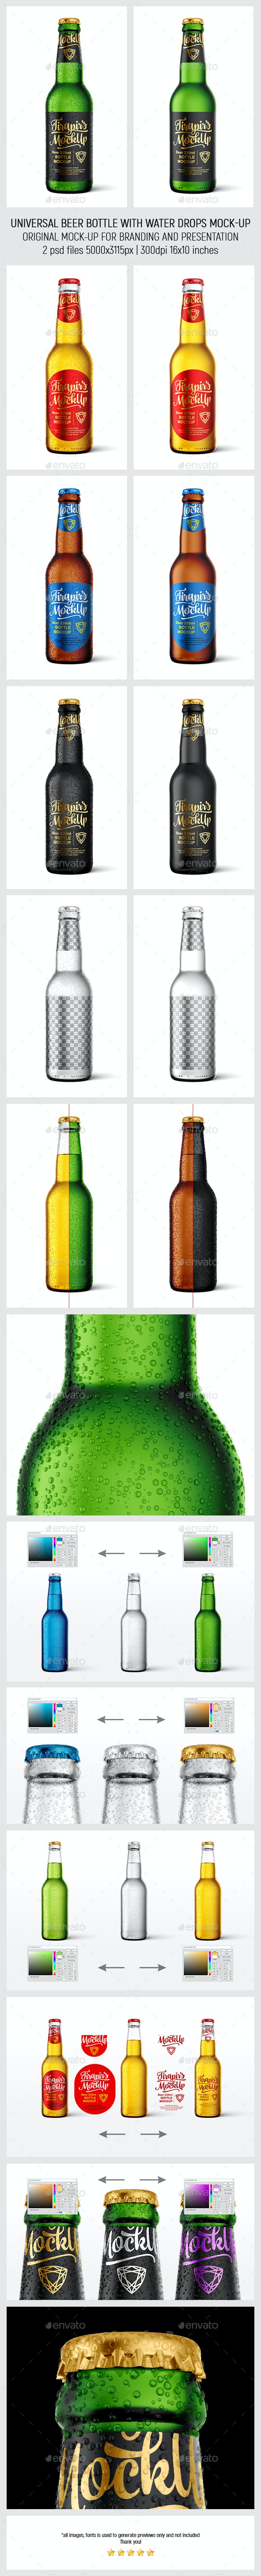 Universal Beer Bottle With Water Drops MockUp - Food and Drink Packaging